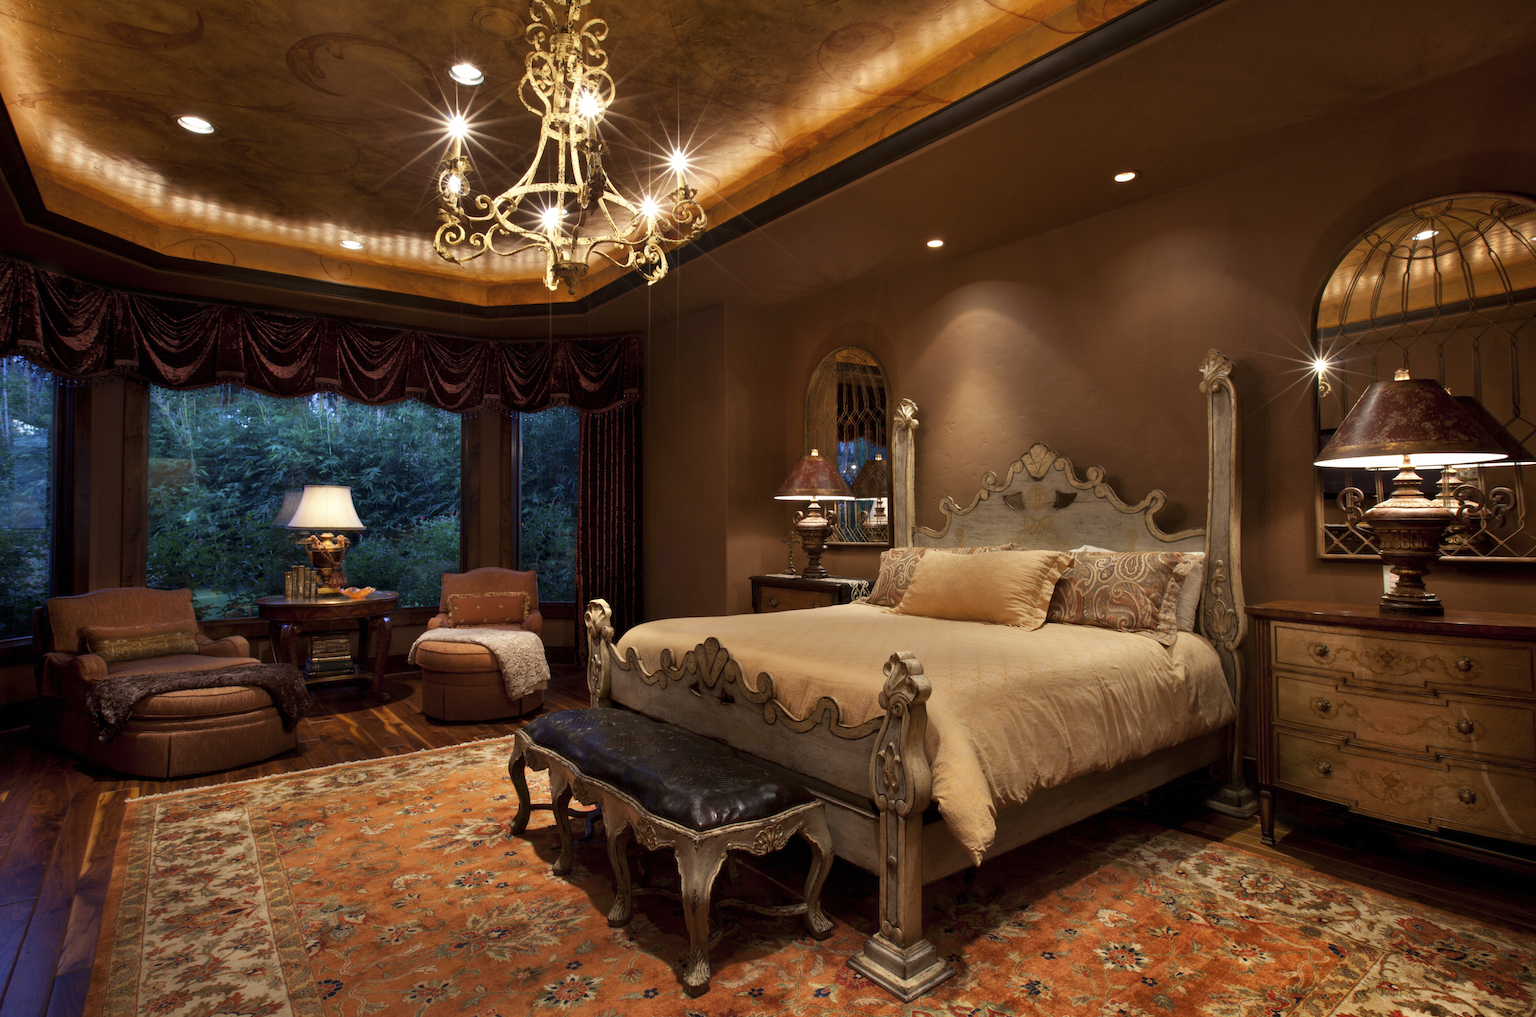 Romancing-master-bedroom-decorating-ideas